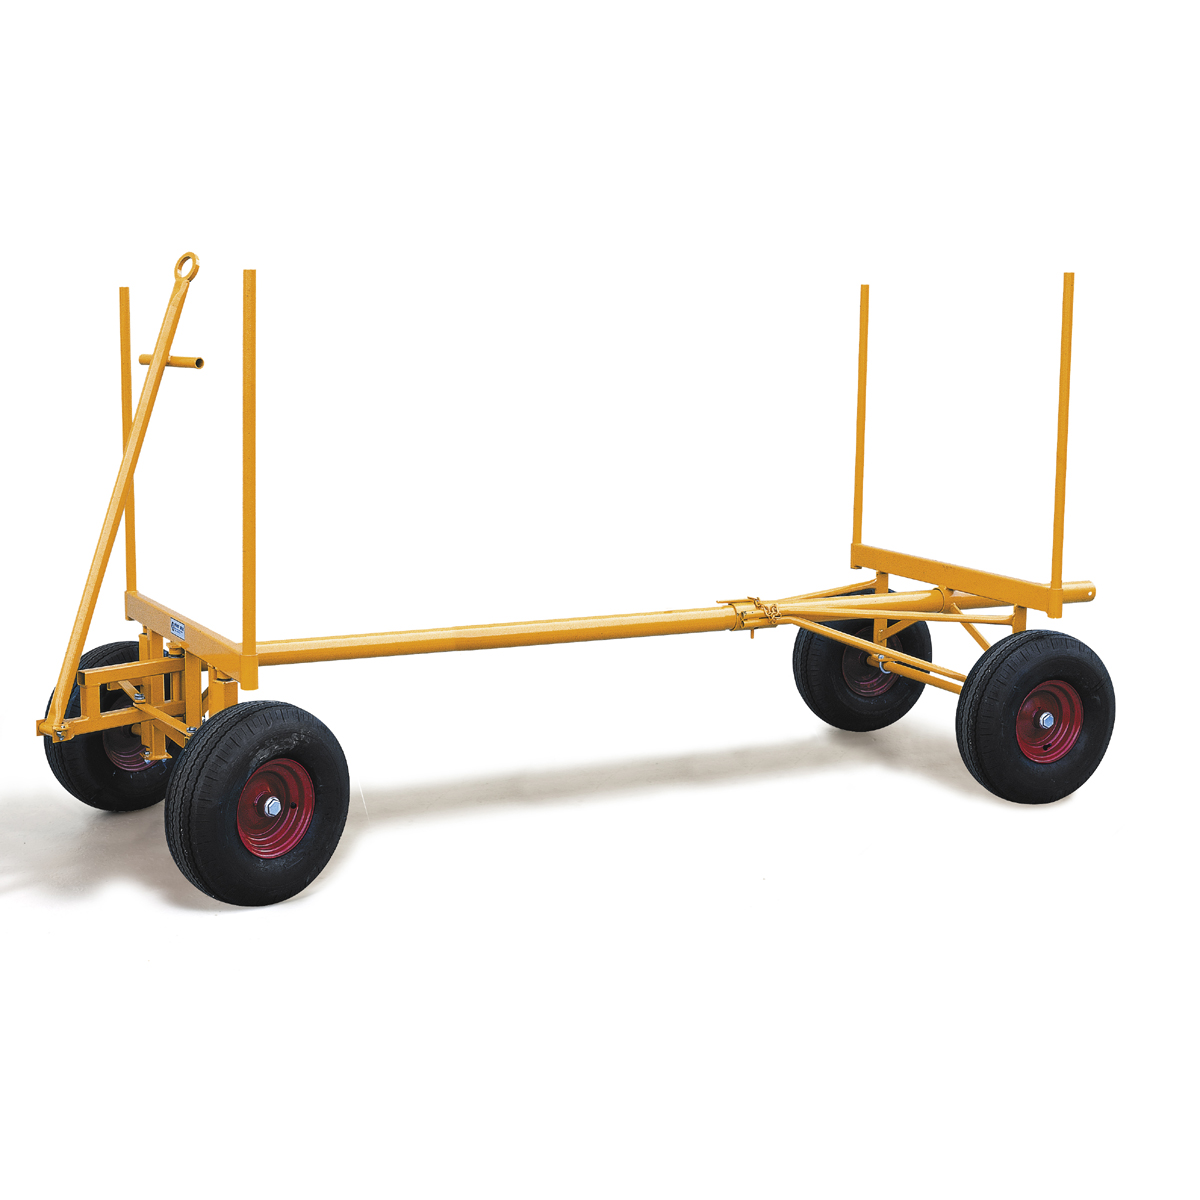 LONG-GOODS TRAILER 6000, 3500 KG